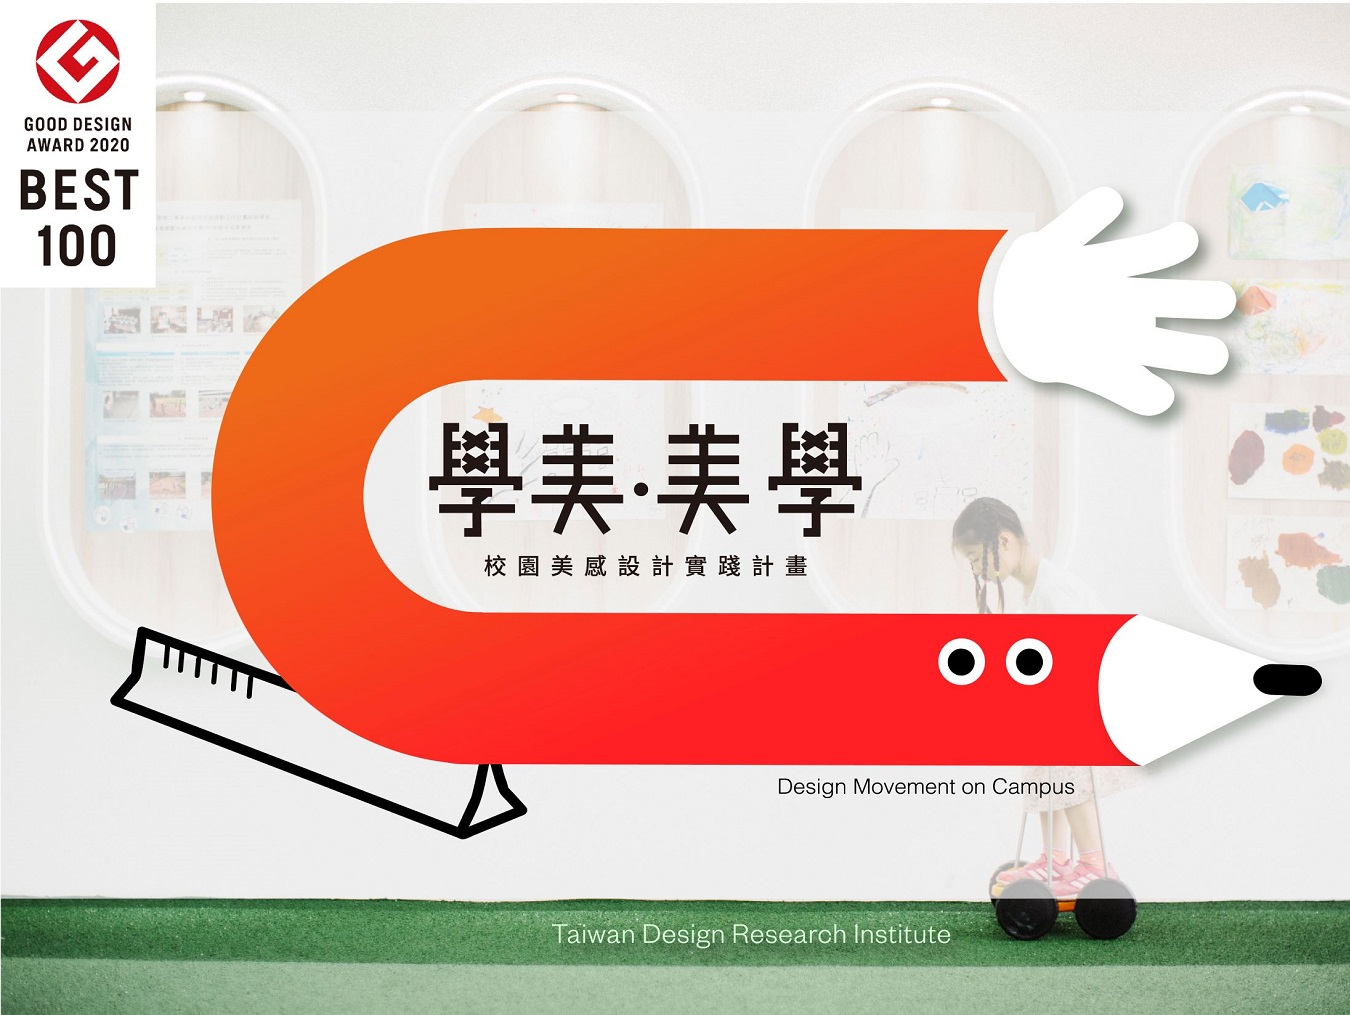 校園改造獲日本2020 GOOD DESIGN AWARD BEST 100大獎